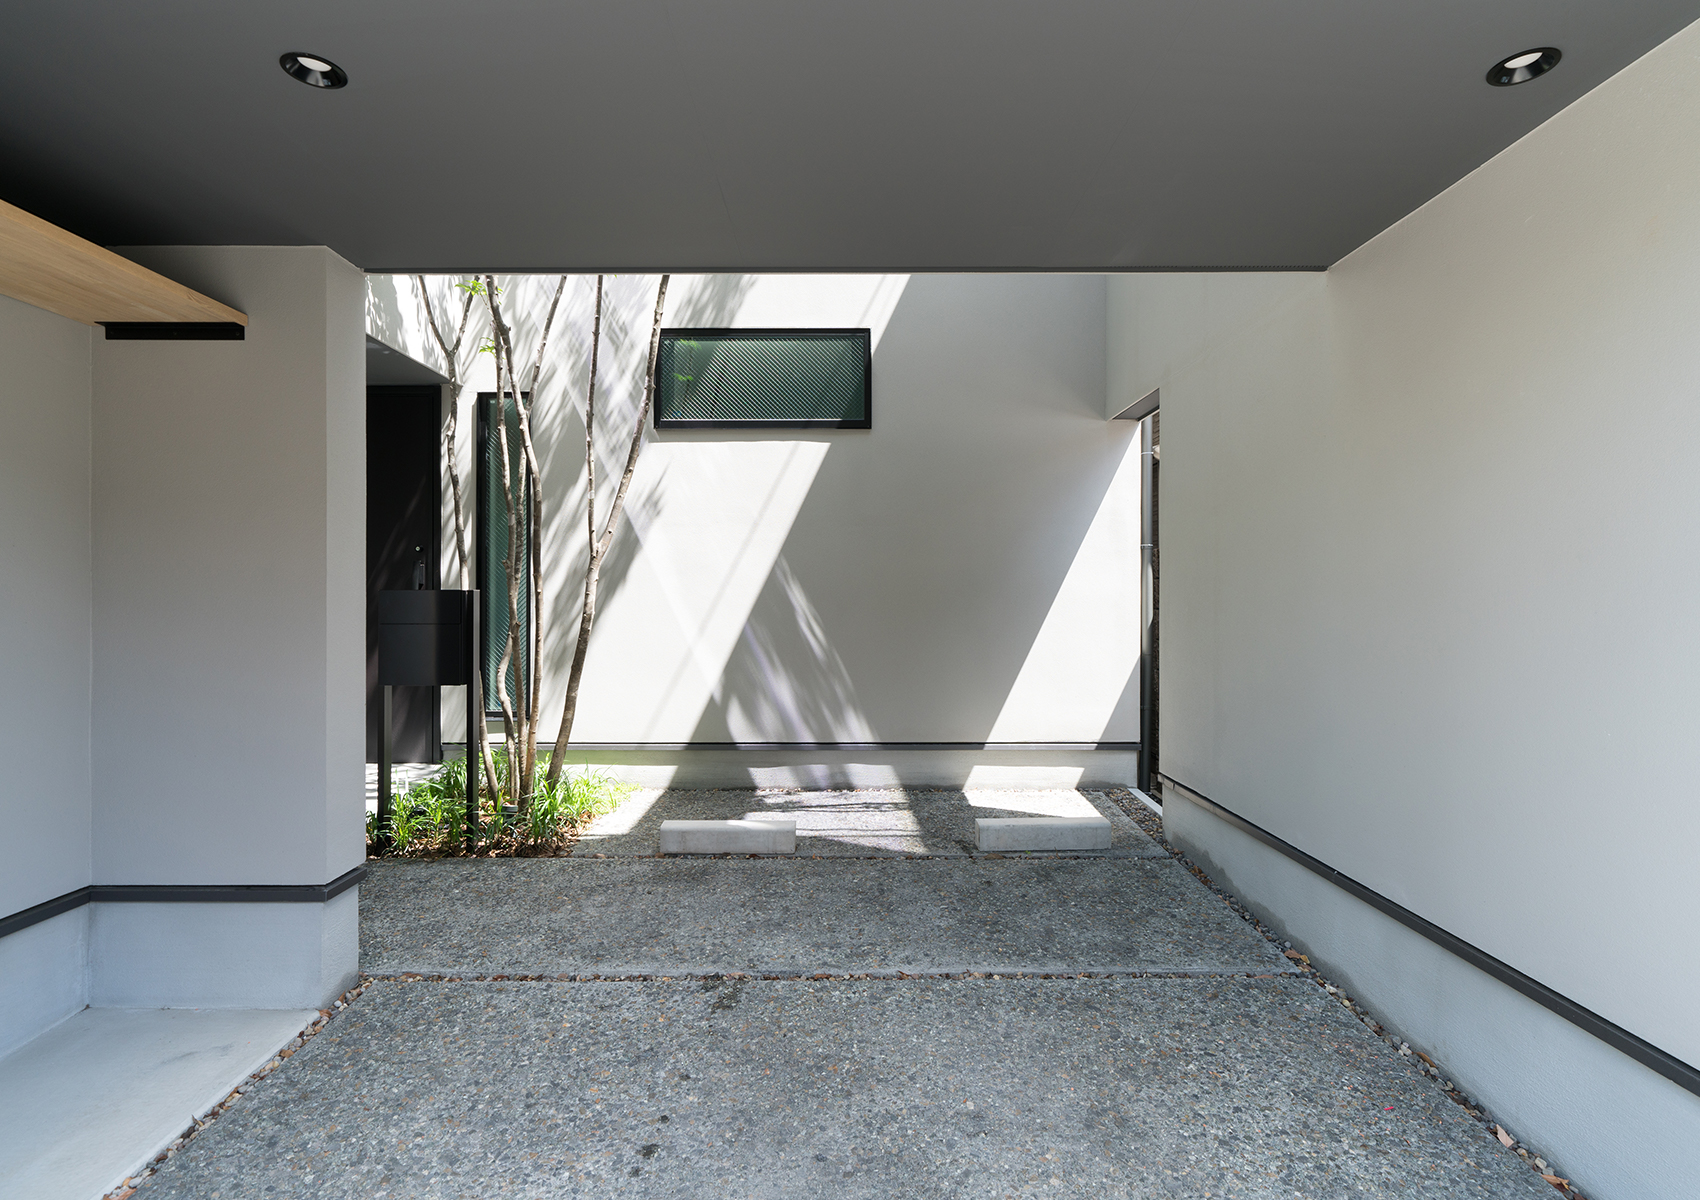 https://www.advance-architect.co.jp/works/2018/05/hhh2/